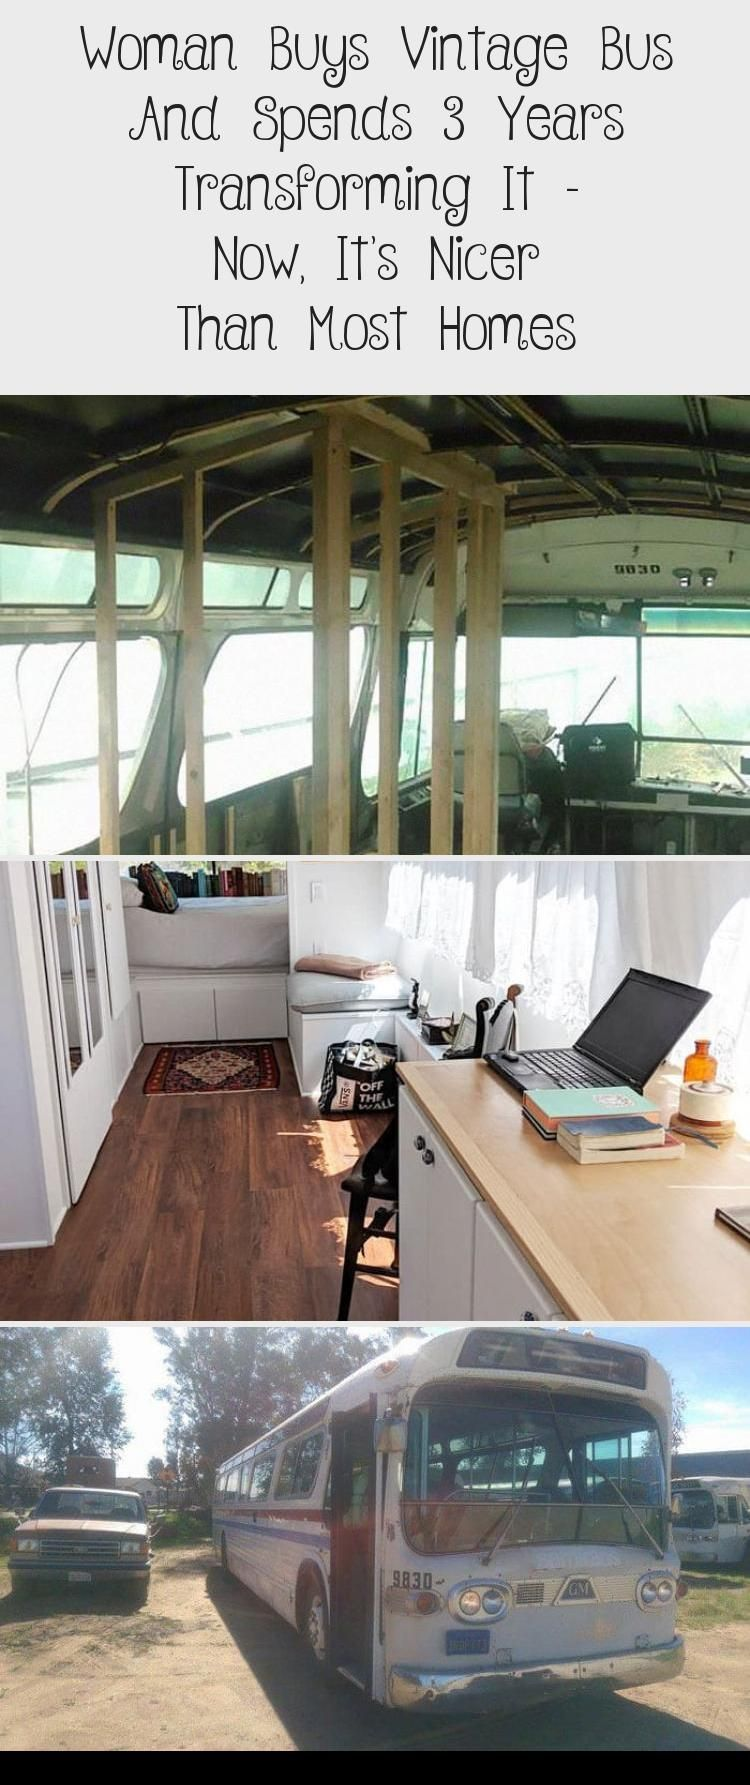 Woman Buy Vintage Bus And Transforms It Into Tiny Home # ...